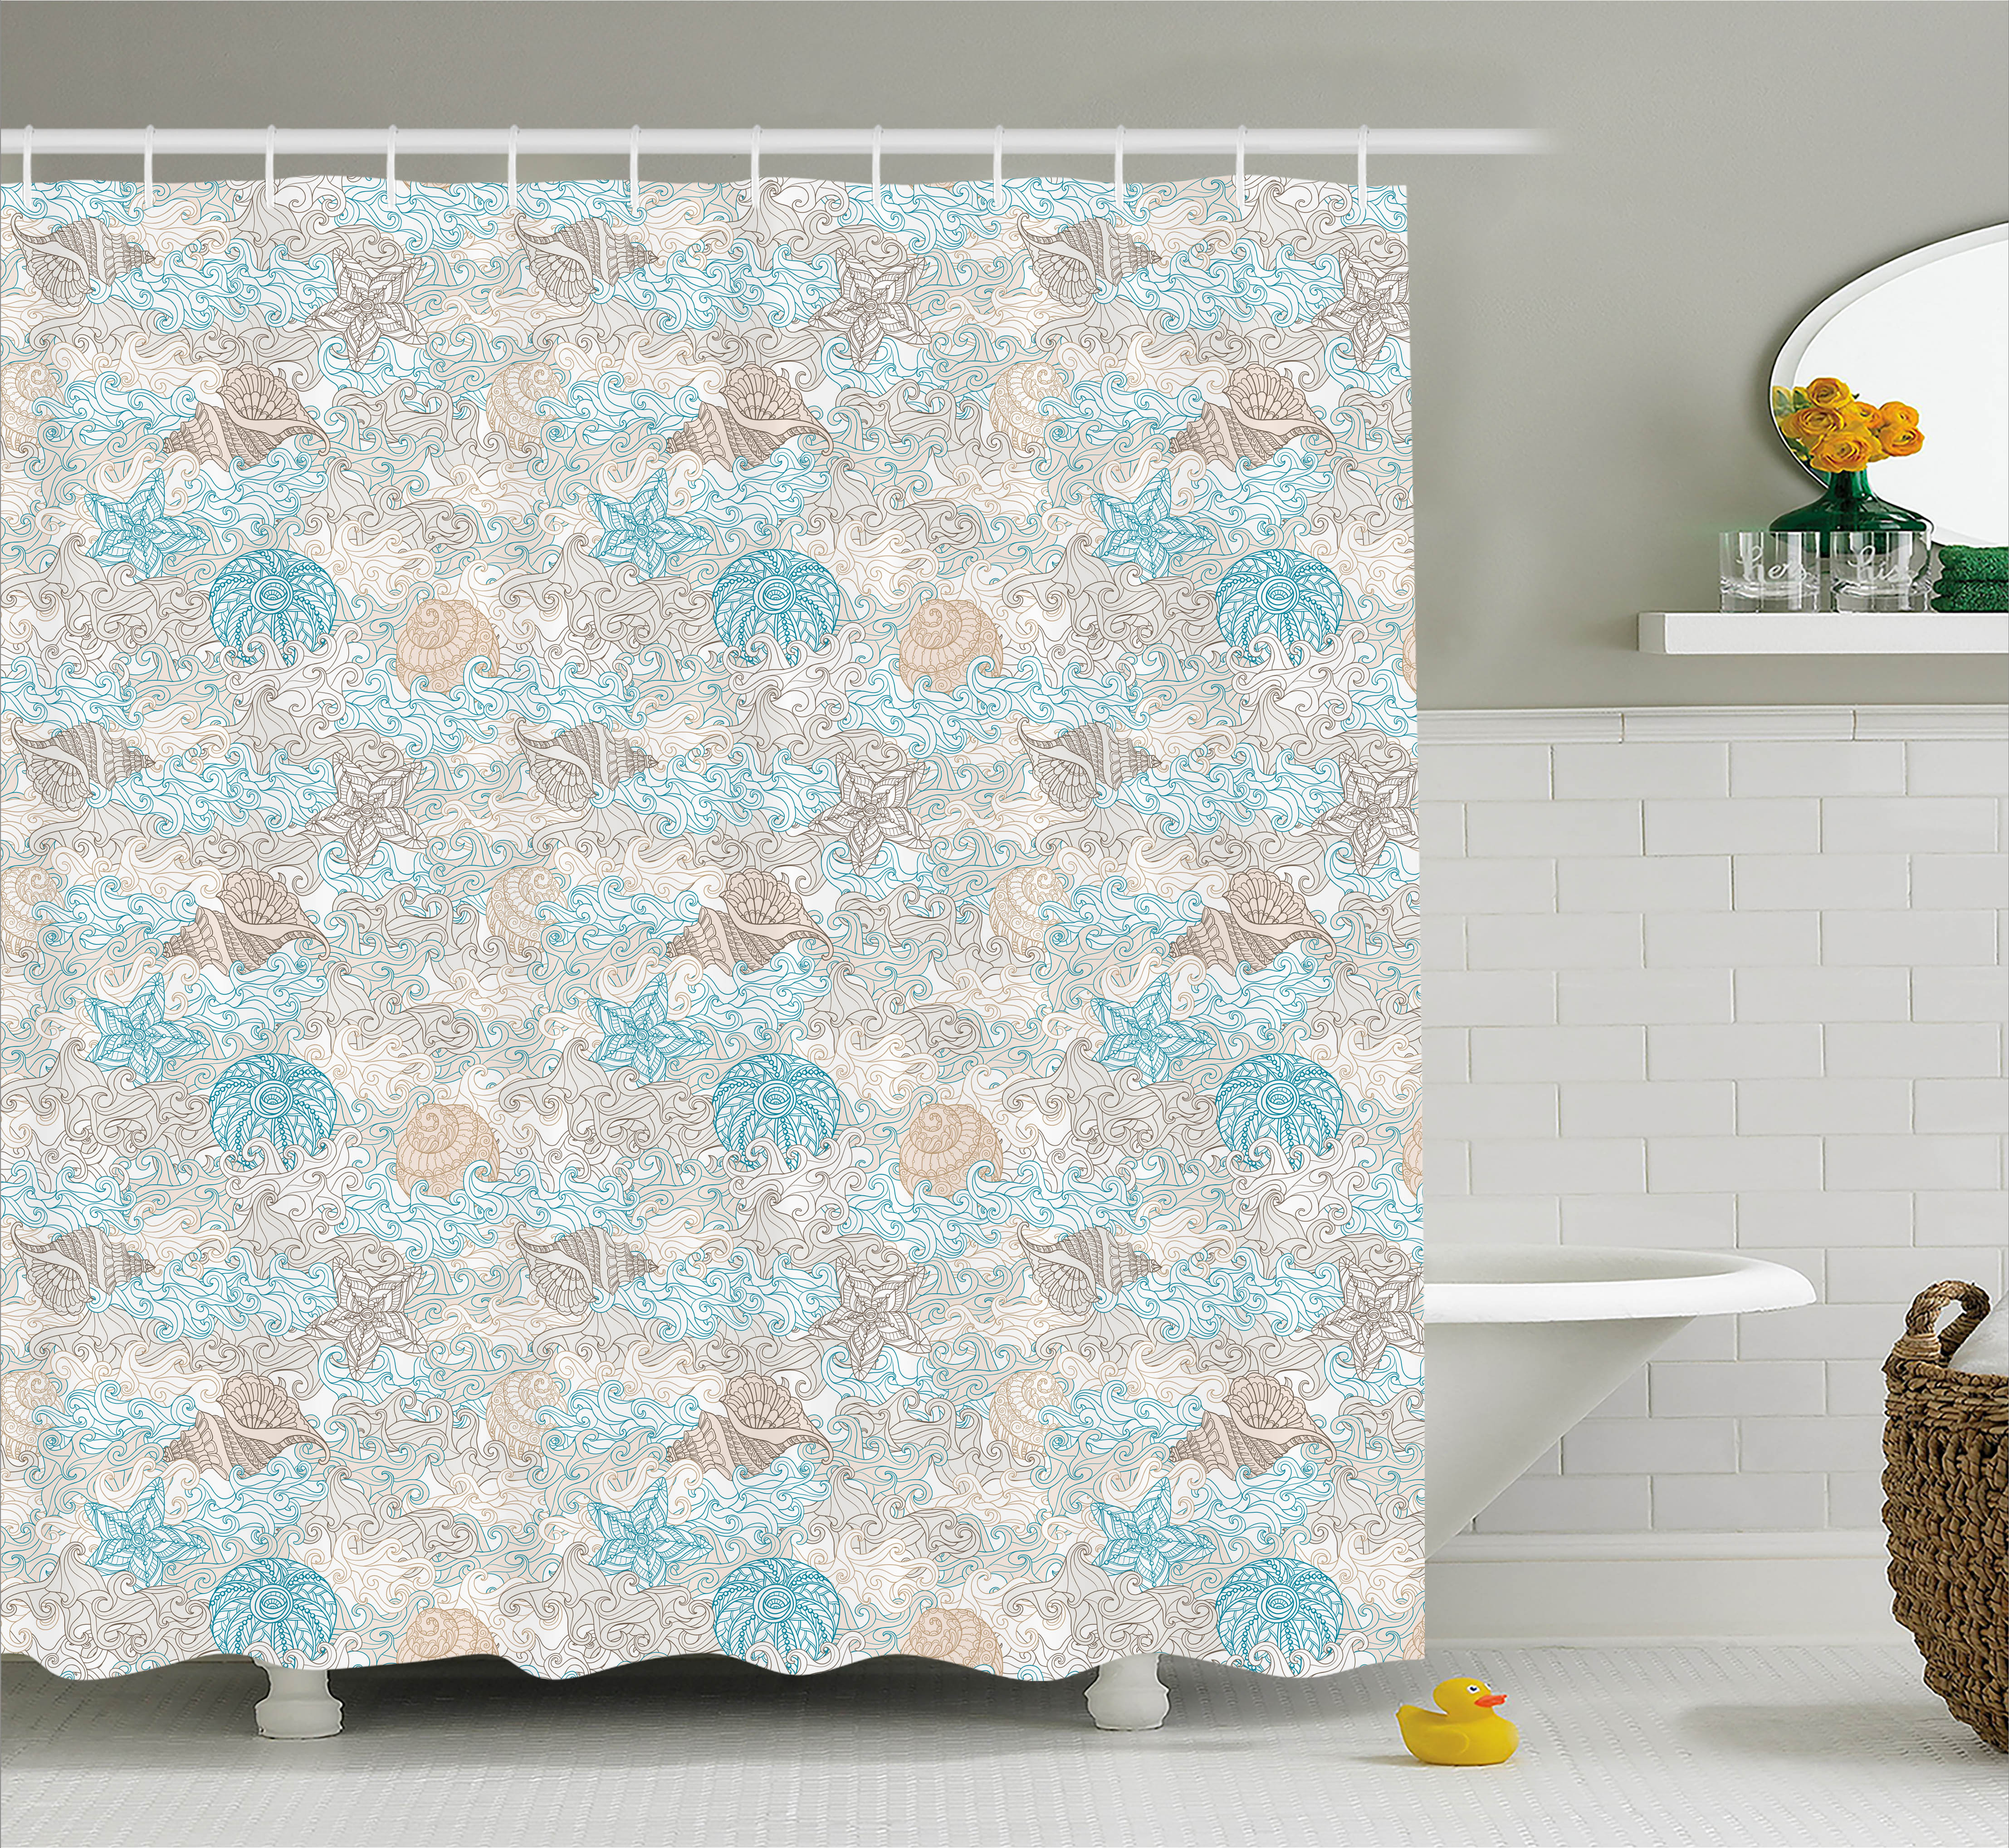 Nautical Shower Curtain, Pastel Toned Sea Shell Starfish Mollusk Seahorse Coral Reef Motif Design, Fabric Bathroom Set with Hooks, 69W X 70L Inches, Tan Turquoise White, by Ambesonne